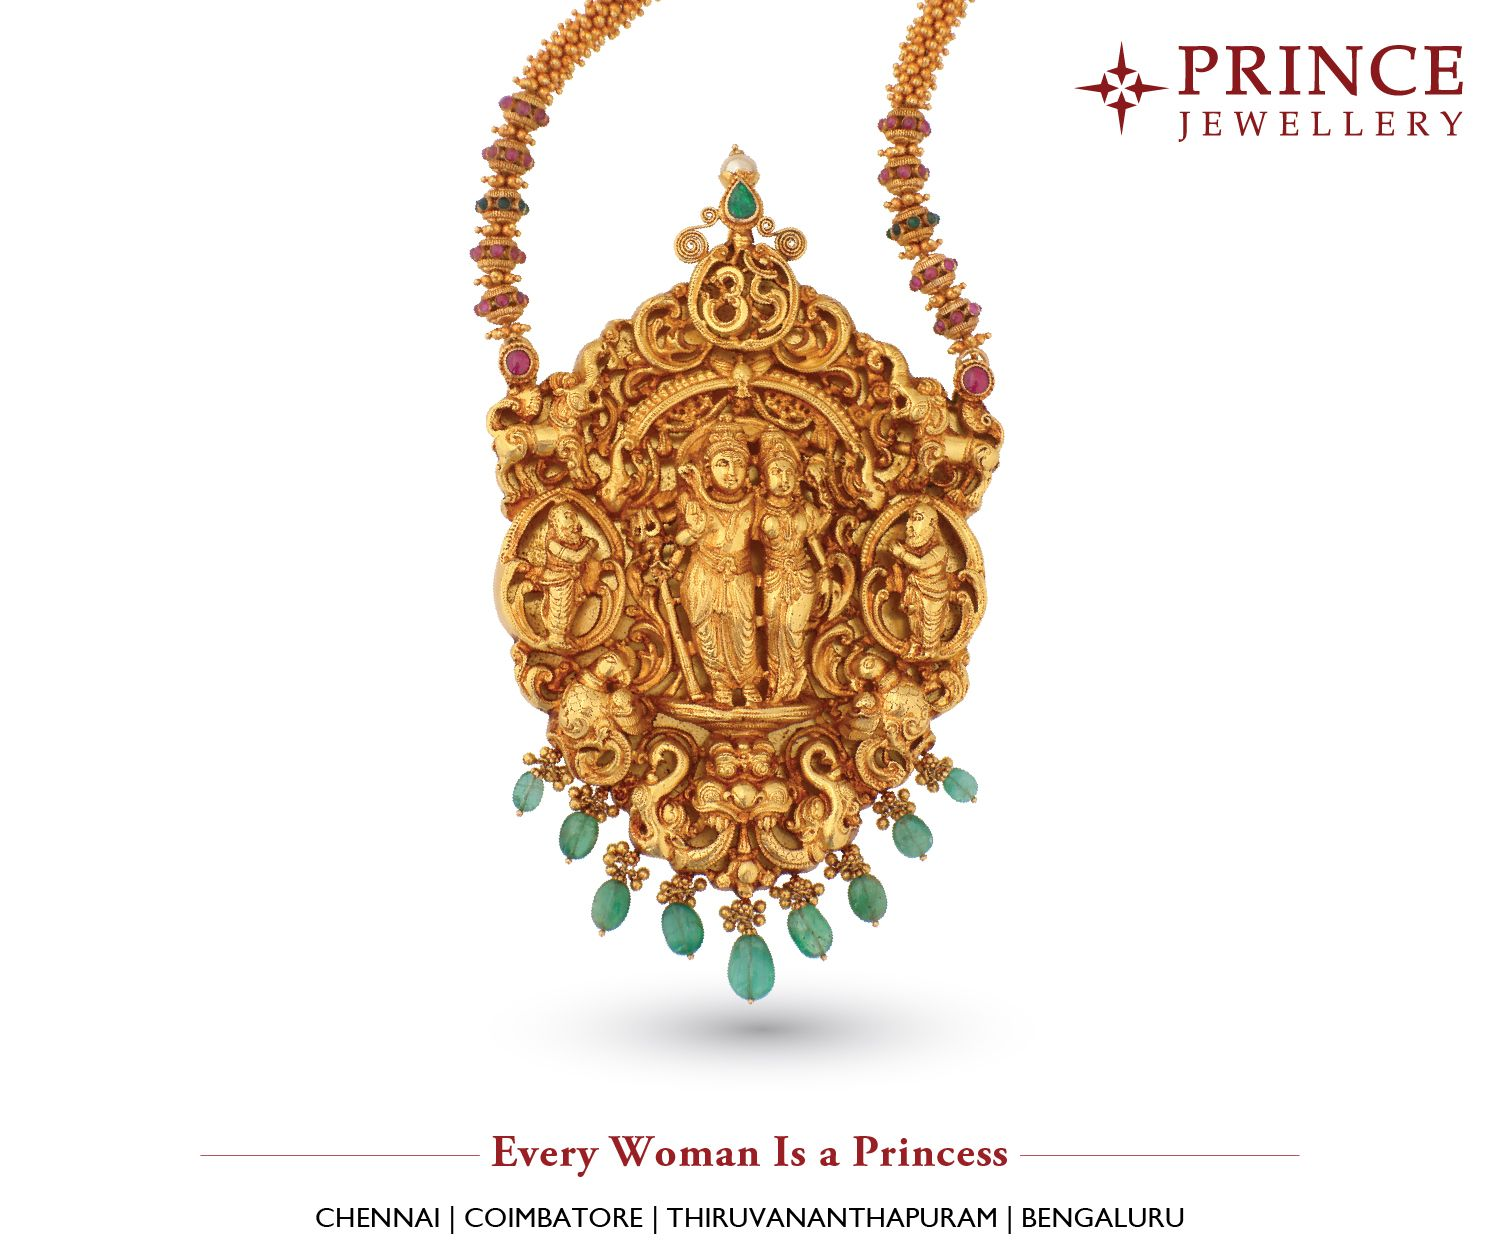 Look ethnic and elegant anywhere you go princejewellery